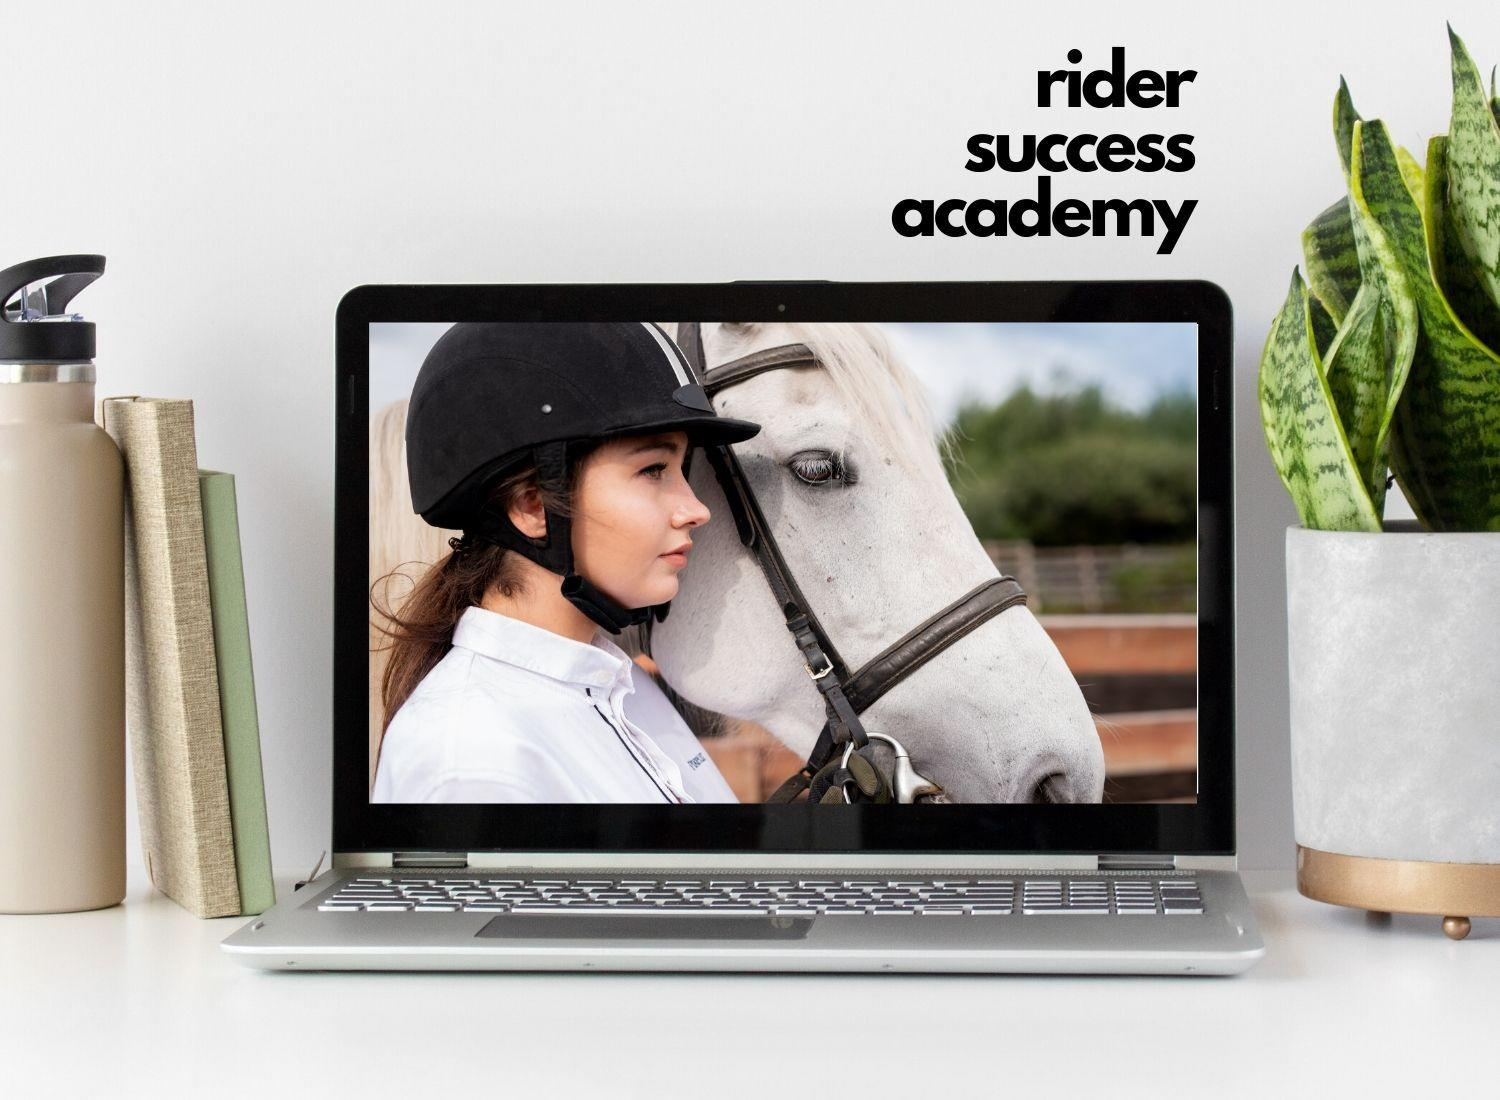 Rider Success Academy